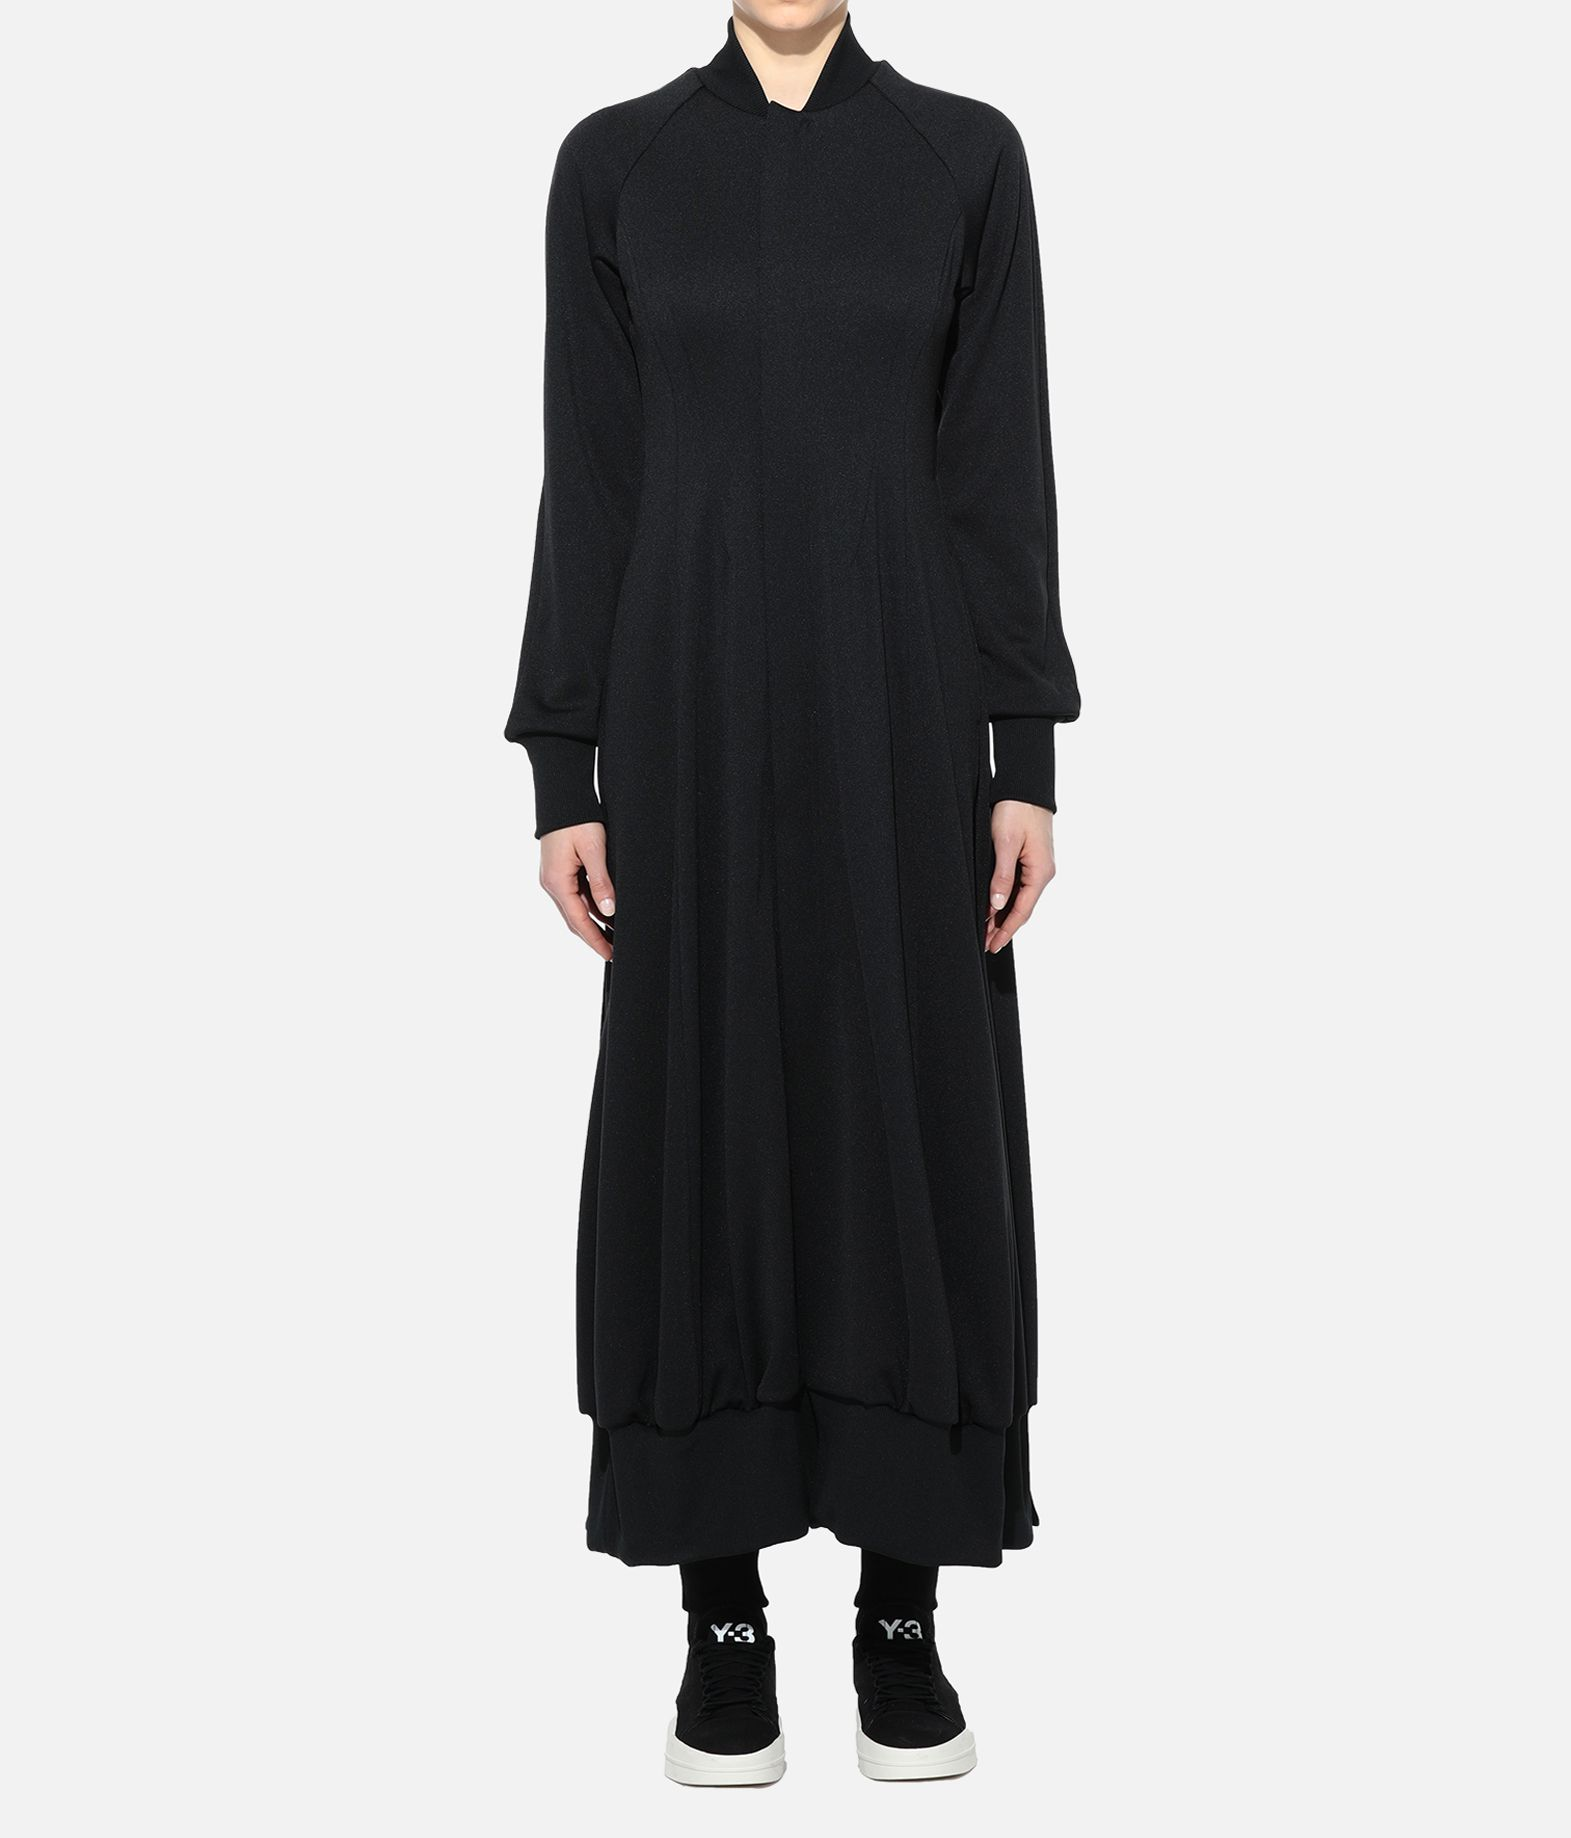 Y-3 Y-3 Yohji Letters Track Jacket Dress Track top Woman r